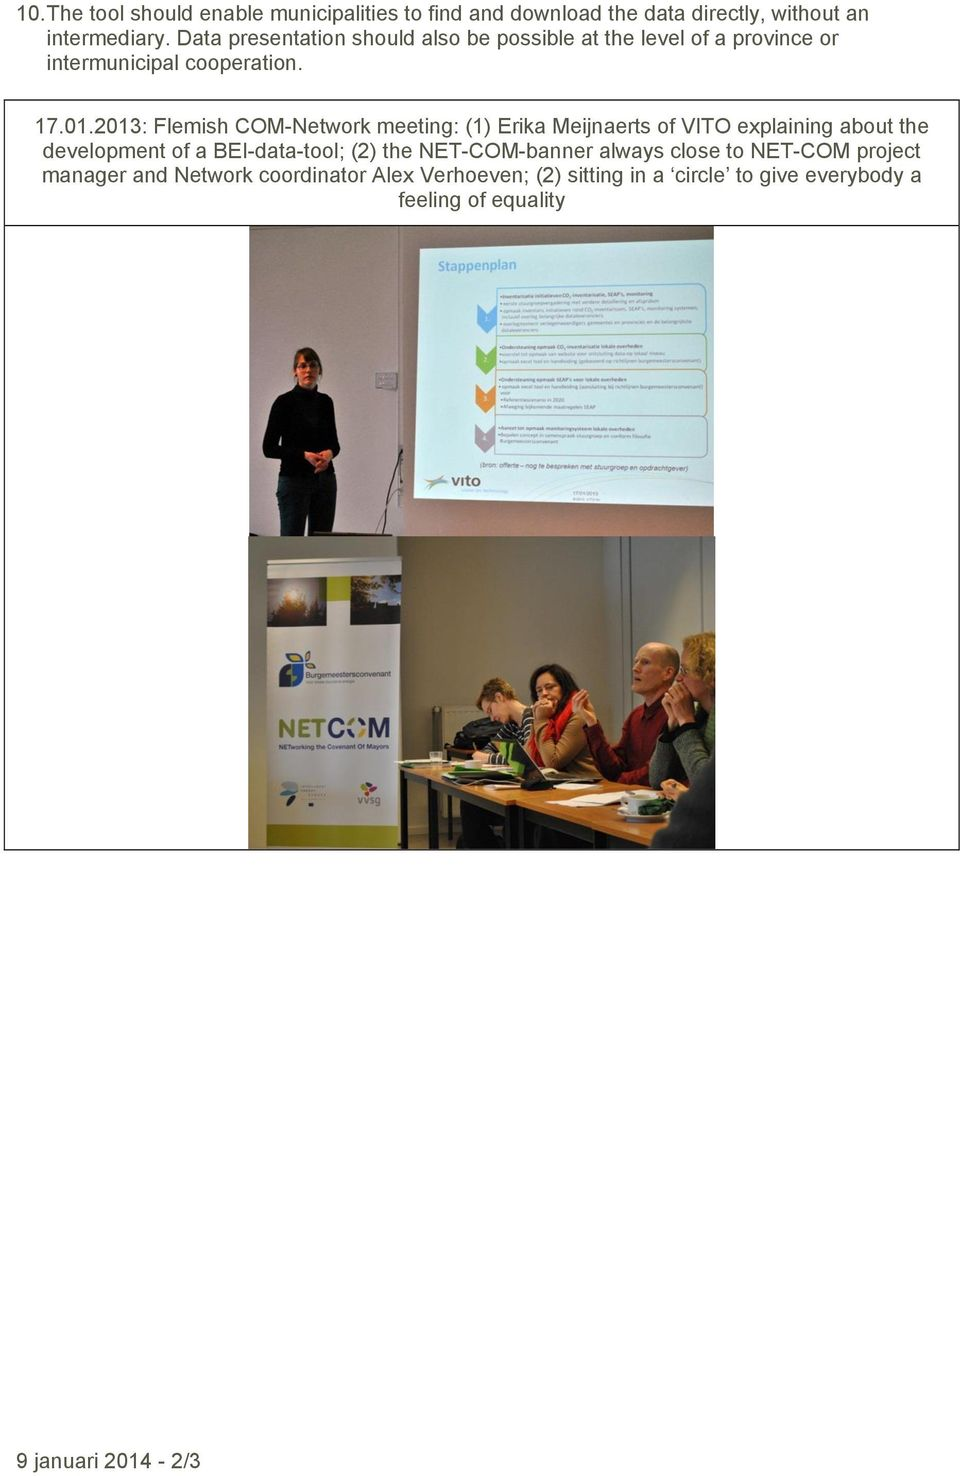 2013: Flemish COM-Network meeting: (1) Erika Meijnaerts of VITO explaining about the development of a BEI-data-tool; (2) the